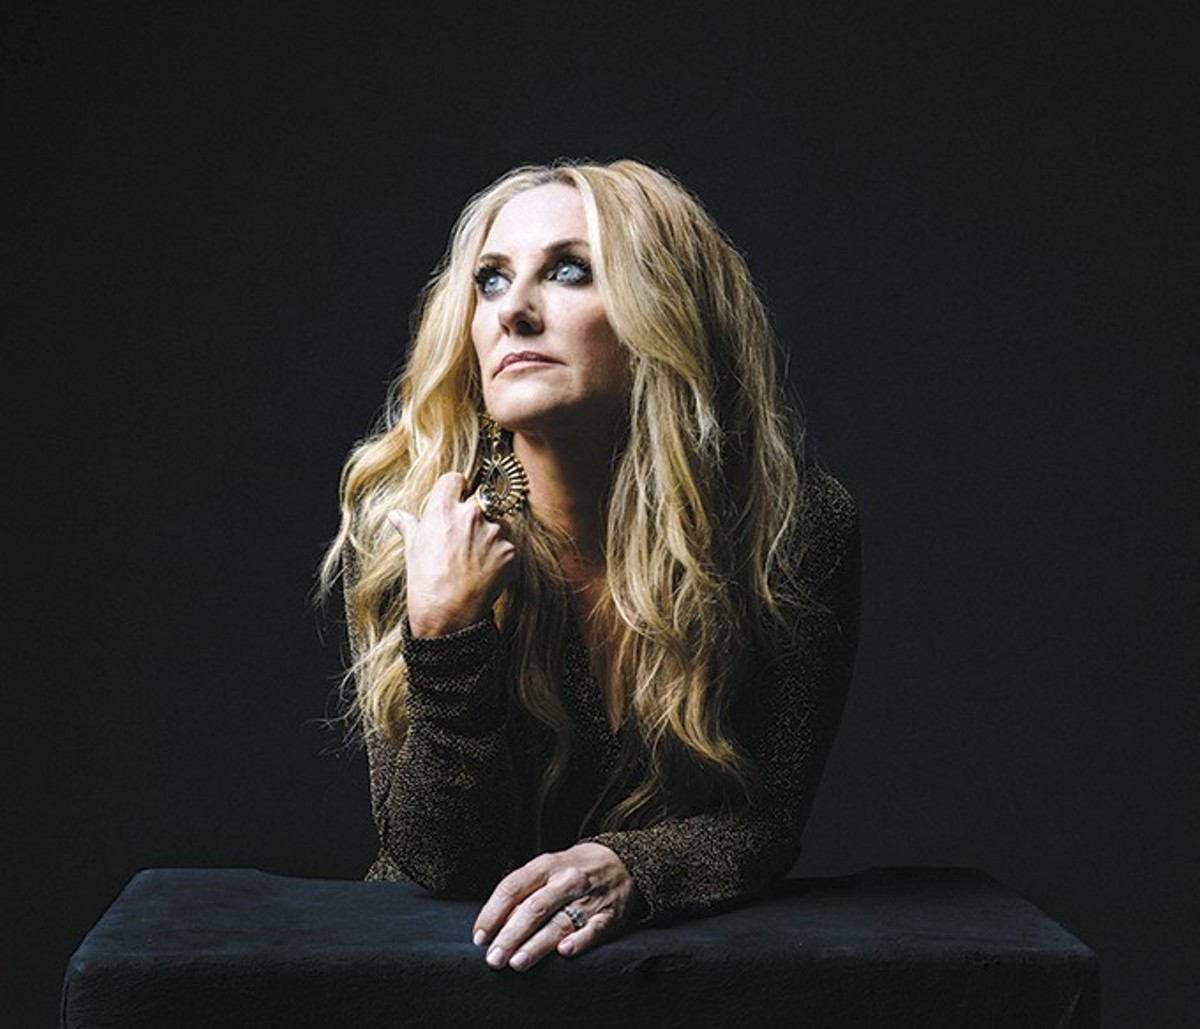 Lee Ann Womack's power to move audiences is as potent as ever on The Lonely, the Lonesome & the Gone.